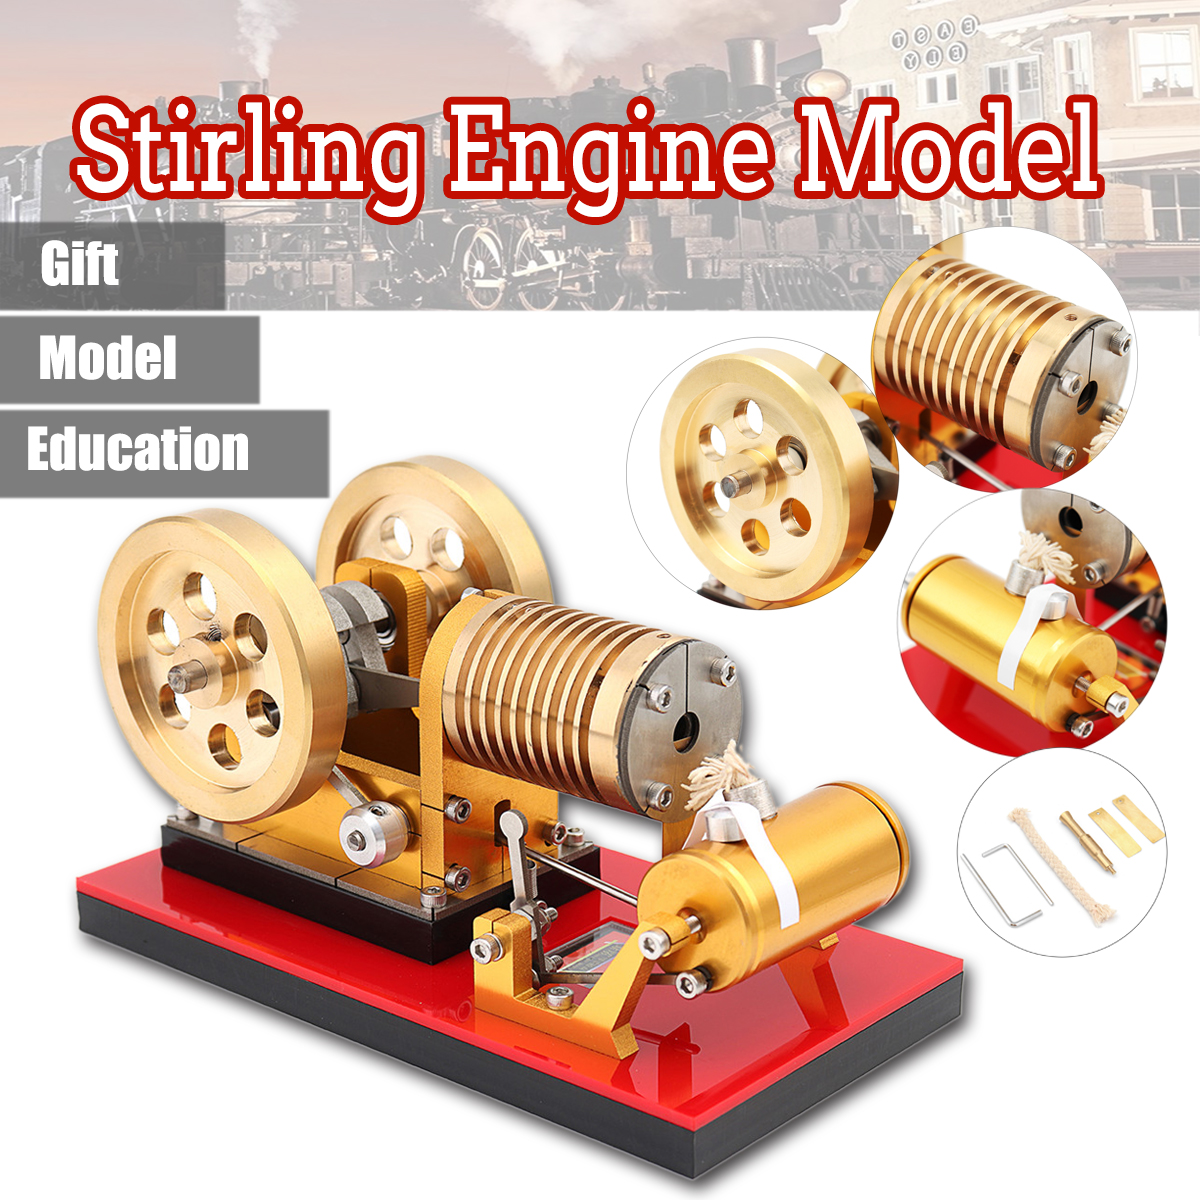 New Upgrade SH-02 Hot Air Stirling Engine Model Tractor Educational Science Discovery Toy Kits For Kid Children цены